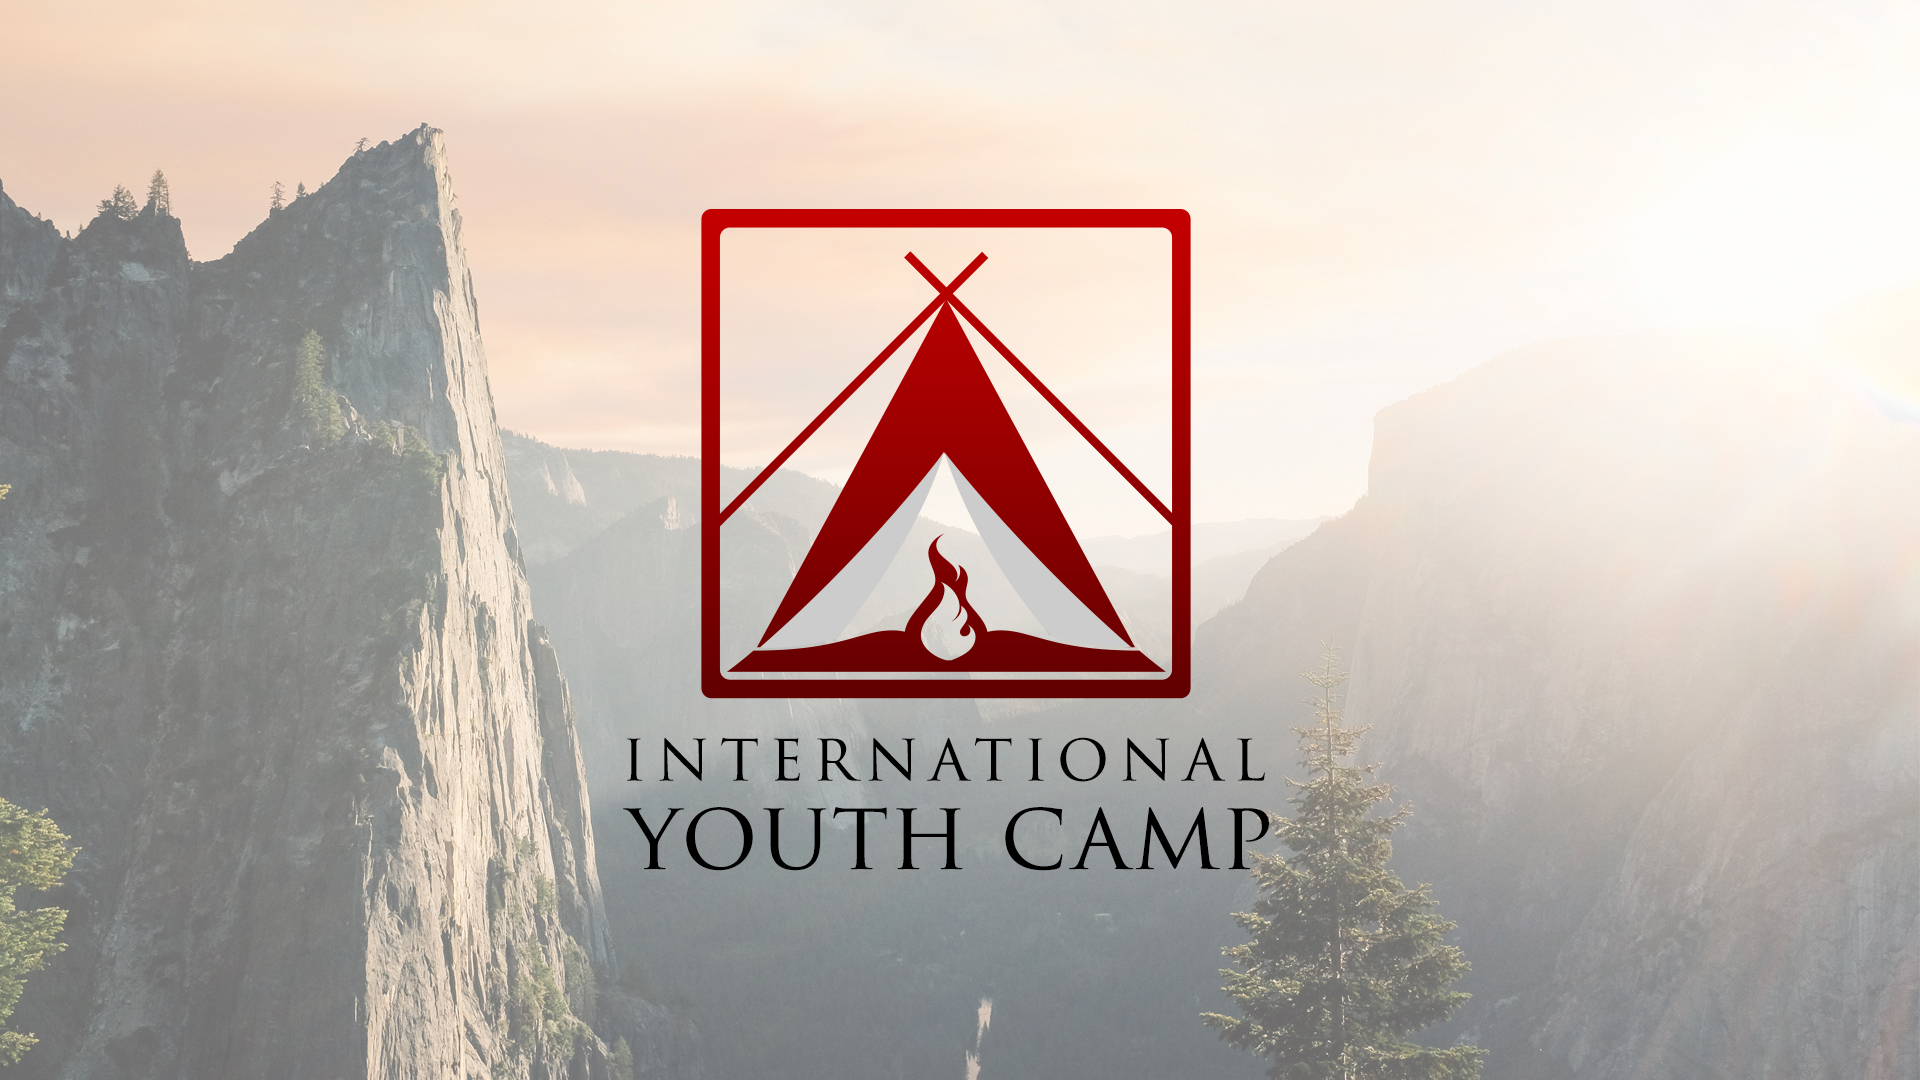 International Youth Camp